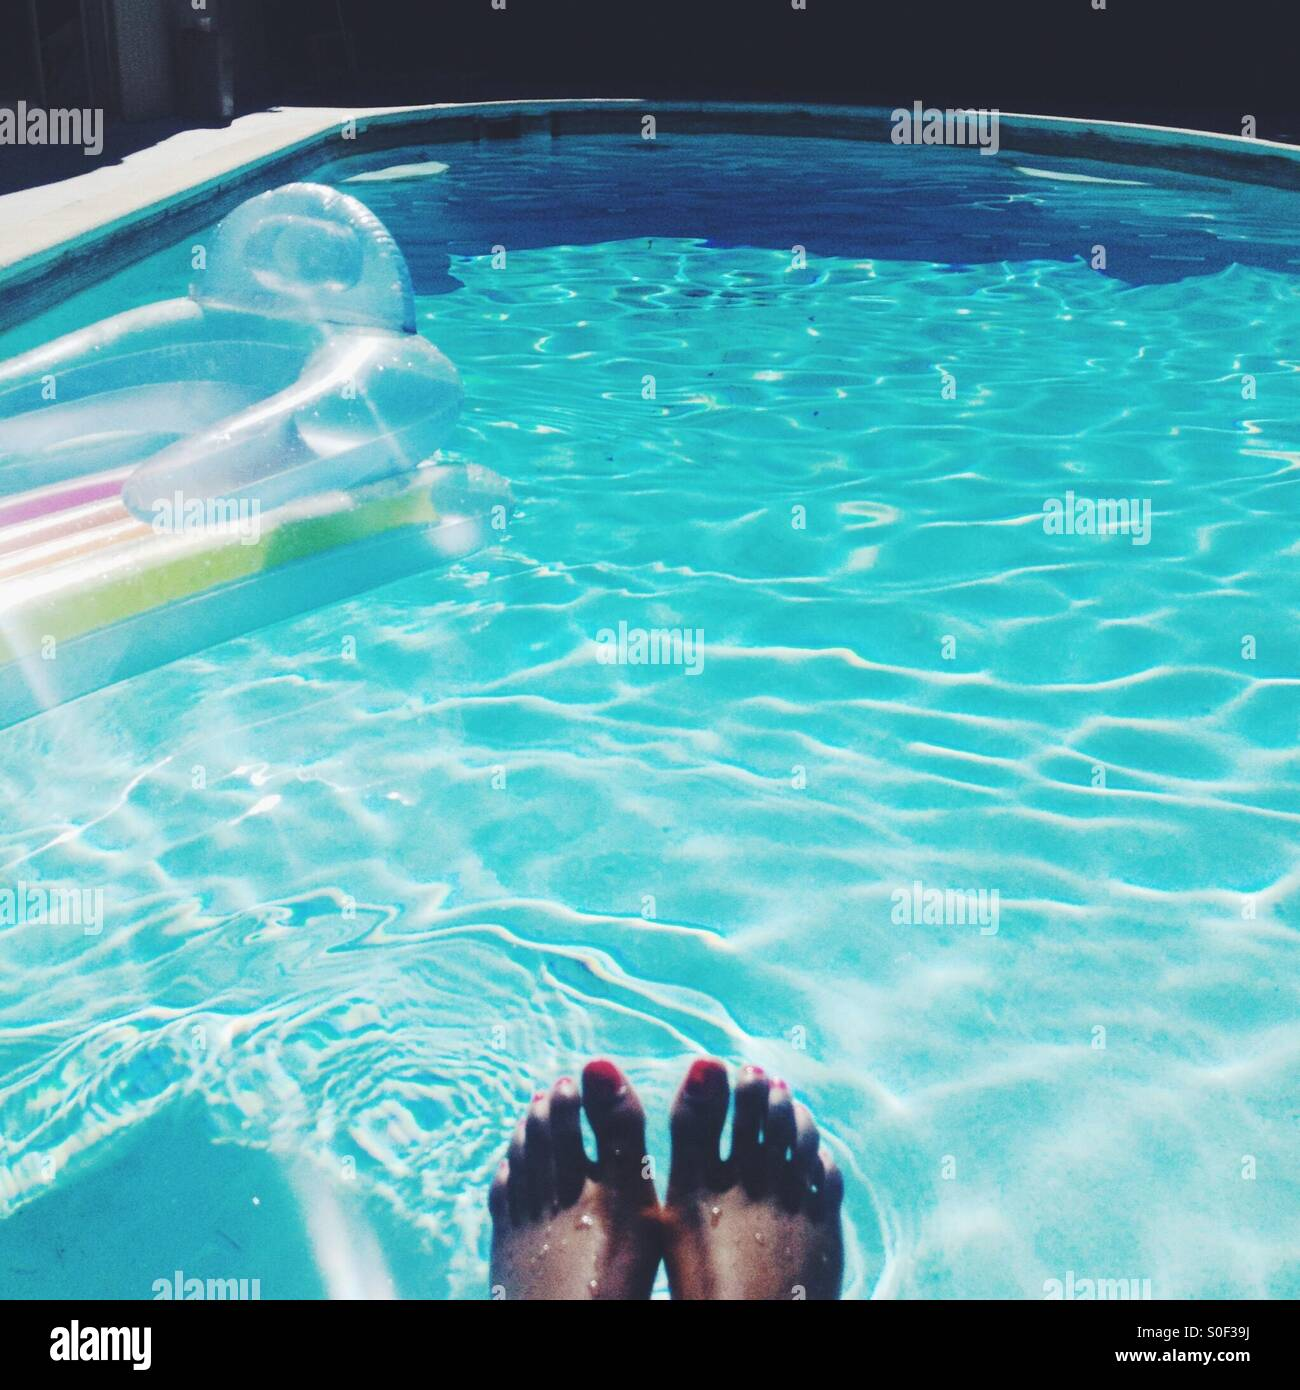 Toes in pool - Stock Image